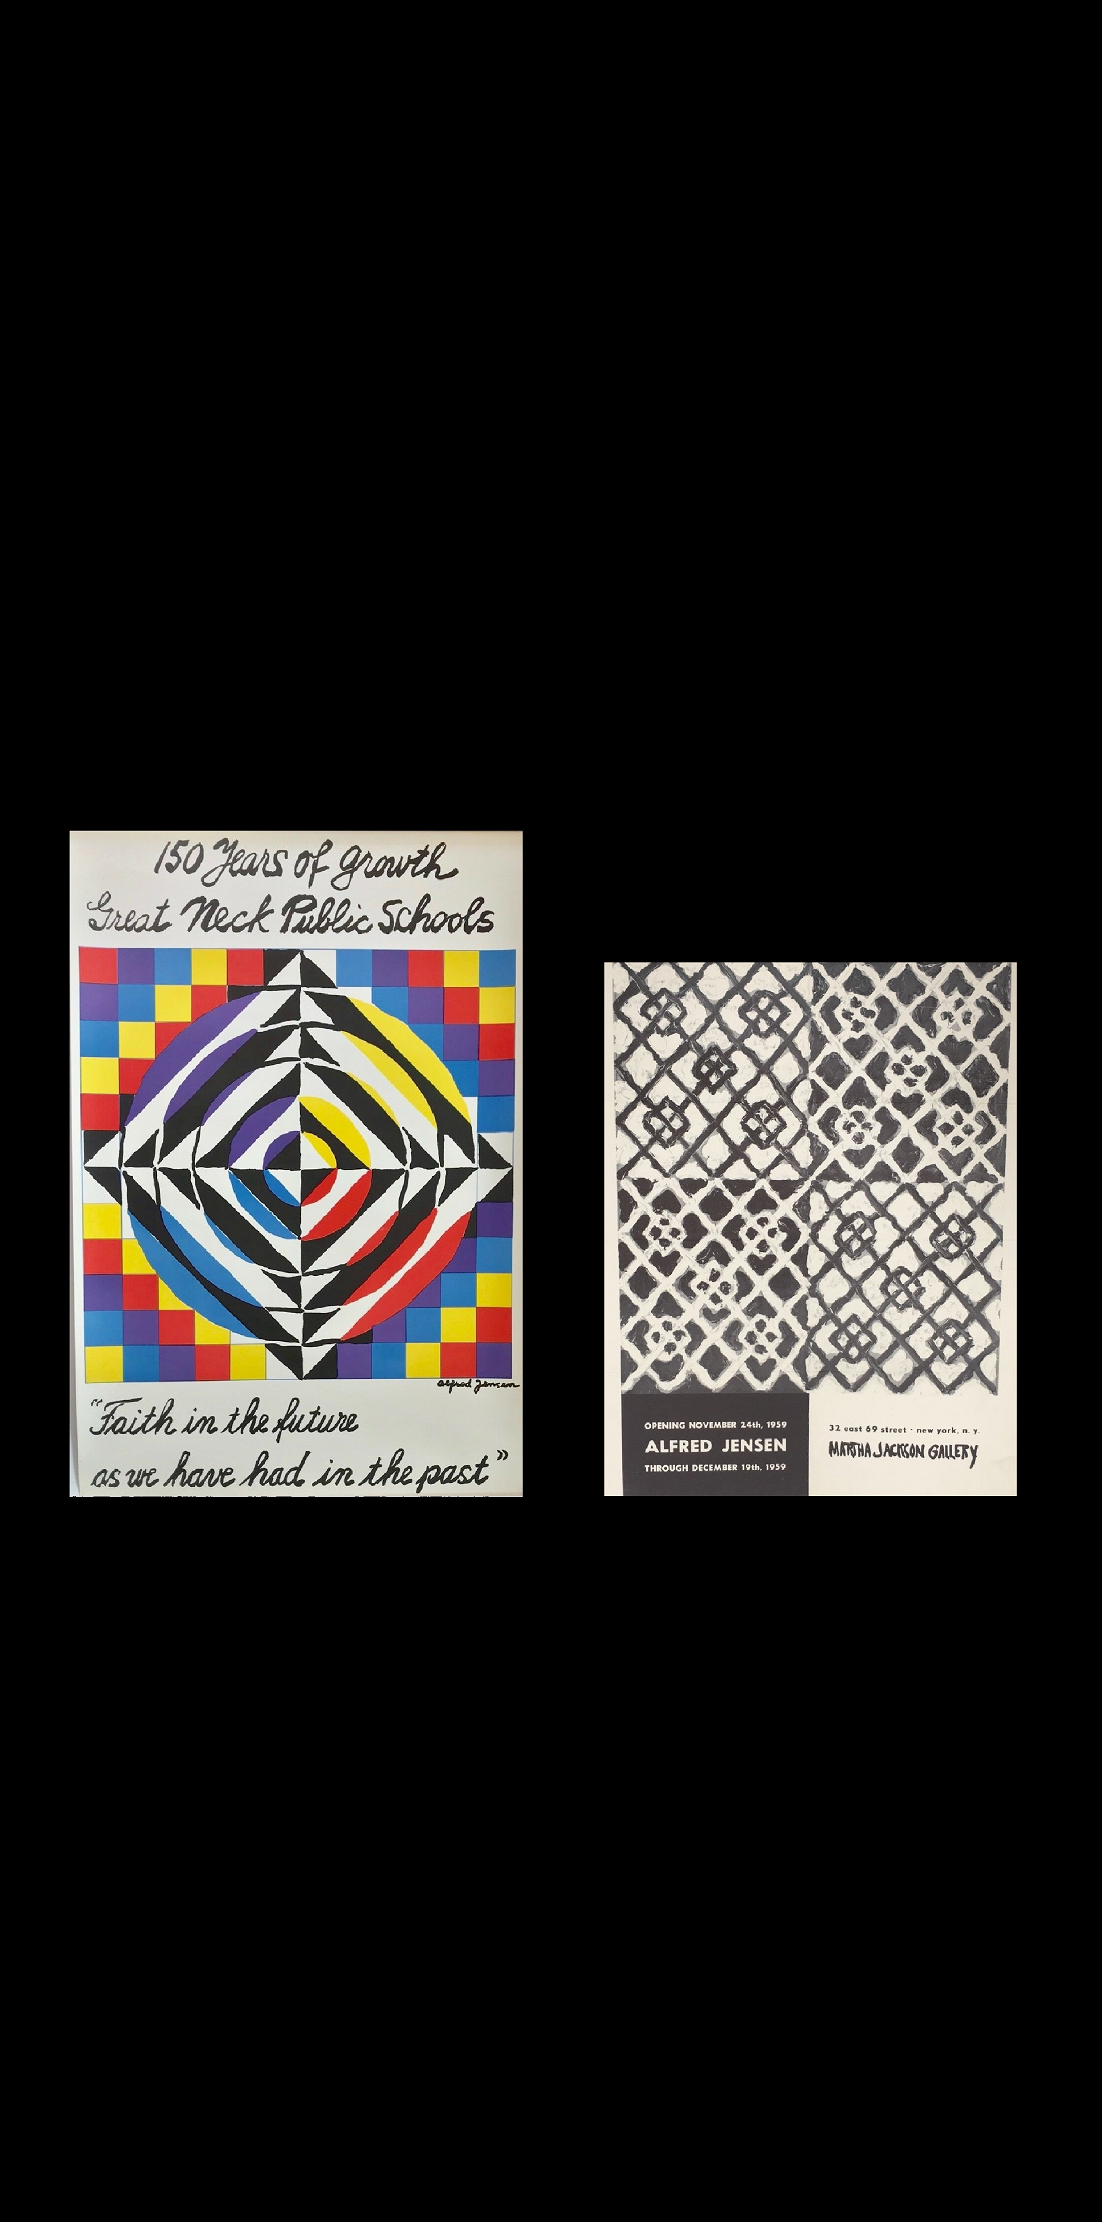 Exhibition Posters-  1959 & 1965, Martha Jackson Gallery NYC.